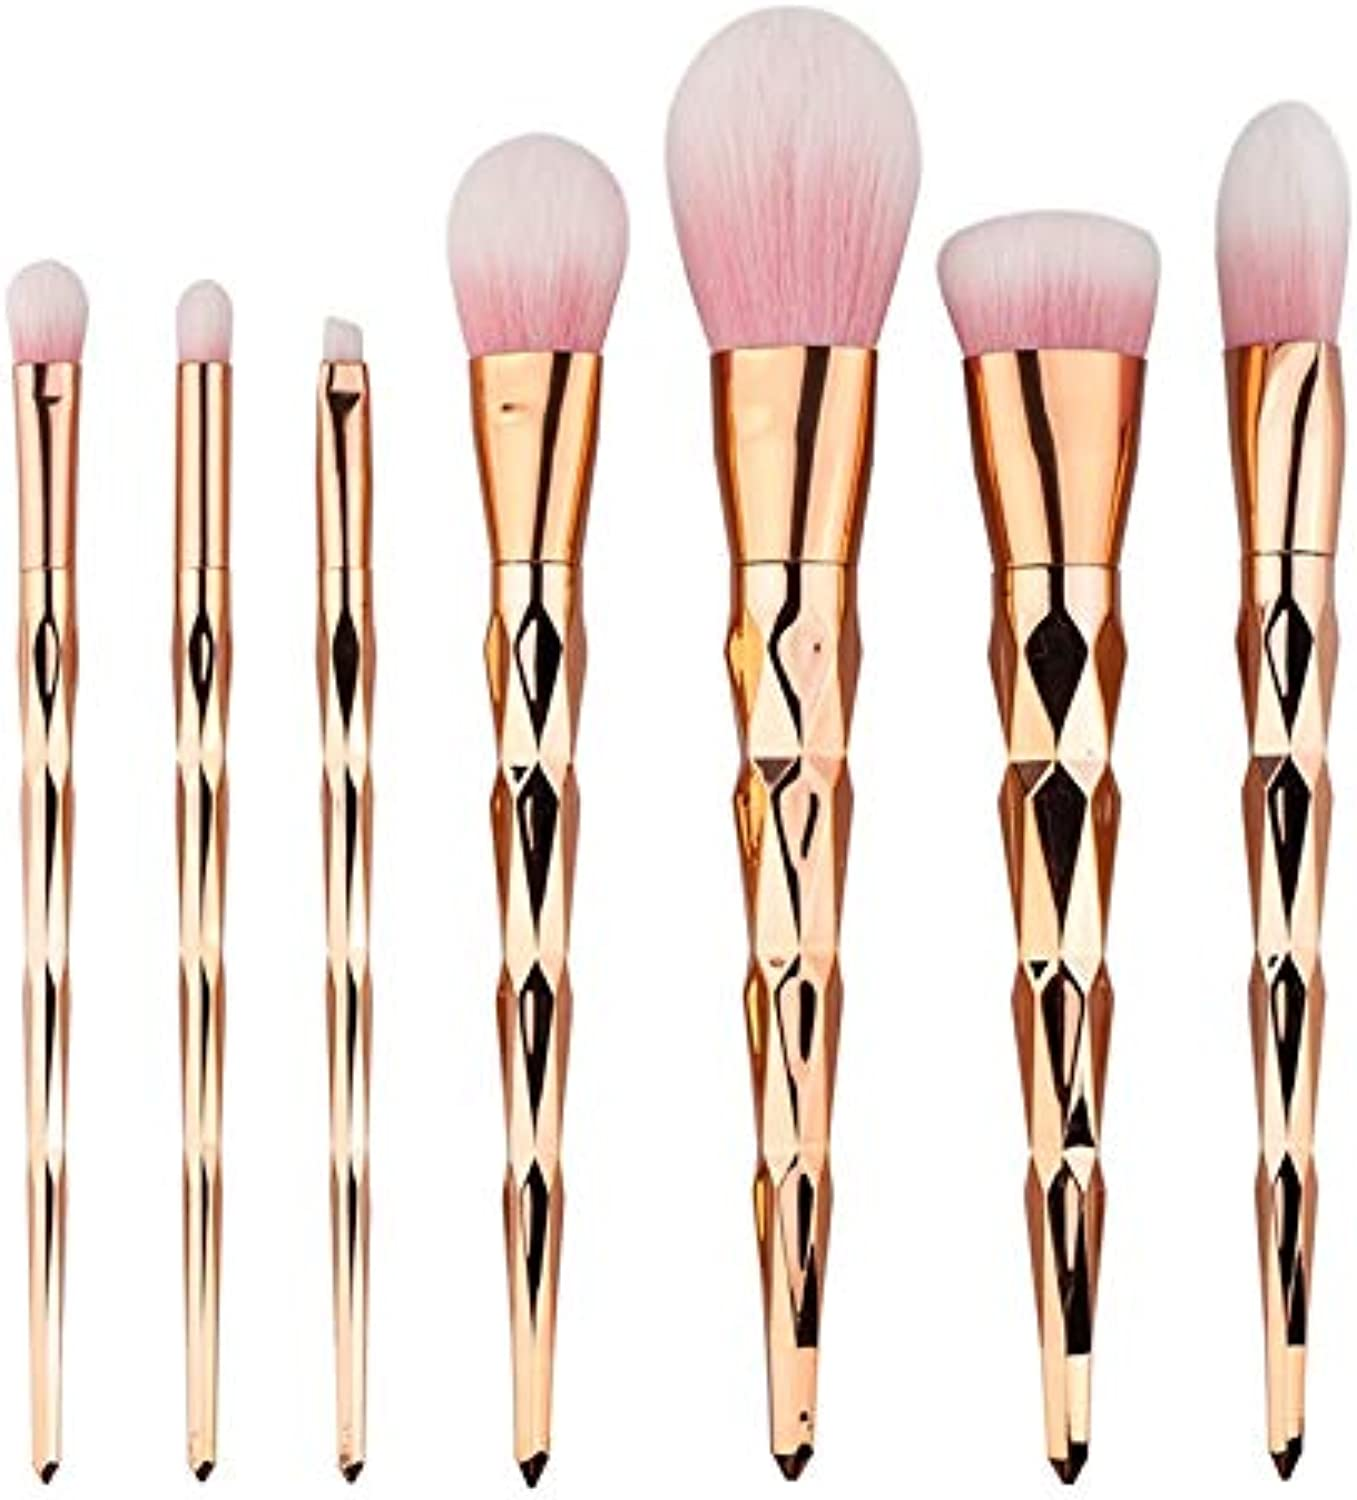 Fashion High end 7pcs colorful Diamond Makeup Brushes(gold) Highlighter Brush, Halo Dye Brush, Eye Shadow Brush, Eyebrow Brush with OPP Bag Pretty (color   gold, Size   19  12  3)